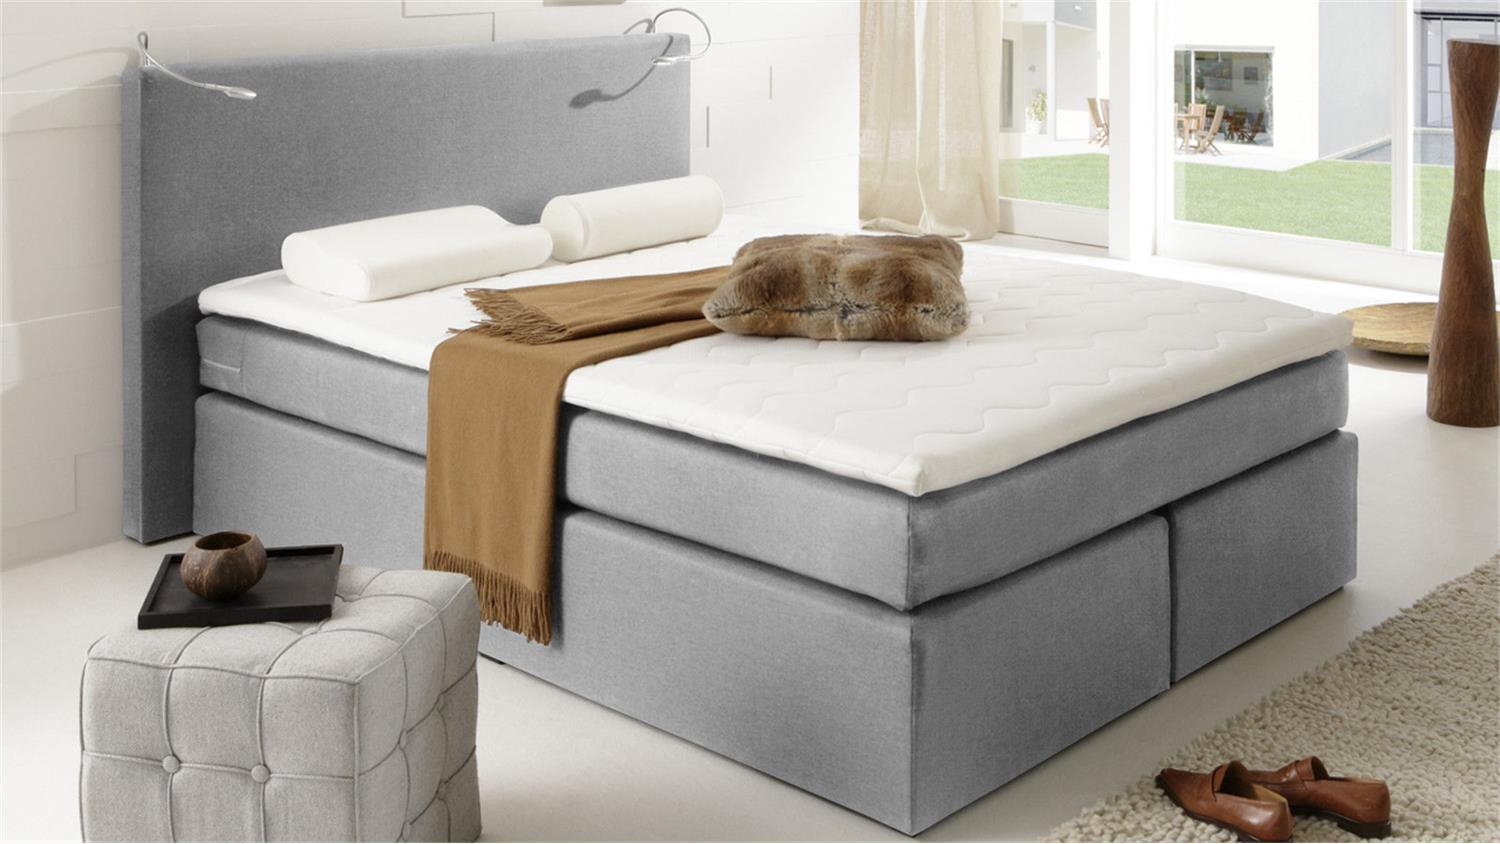 boxspringbett atlanta mit grauem stoff 140x200 cm und topper. Black Bedroom Furniture Sets. Home Design Ideas